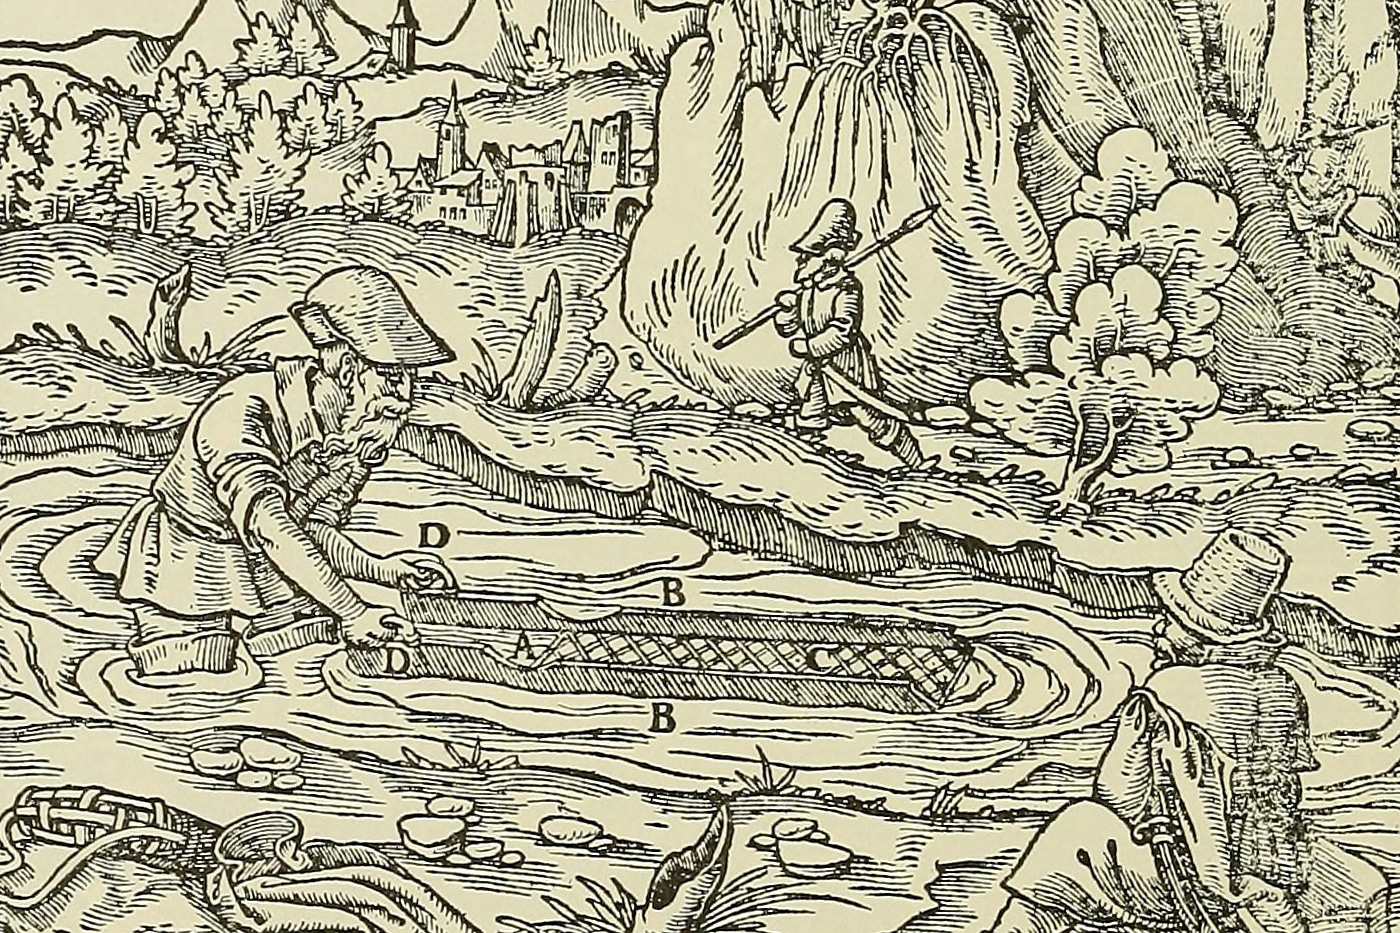 This is the way Gregorius Agricola (1494 – 1555), considered the founder of mineralogy, depicted gold panning at a river. The picture is from his publication Twelve Books on Mining, which was the most used guide for ore mining and smelting for about 200 years. Resource: Boston Library Consortium Member Libraries